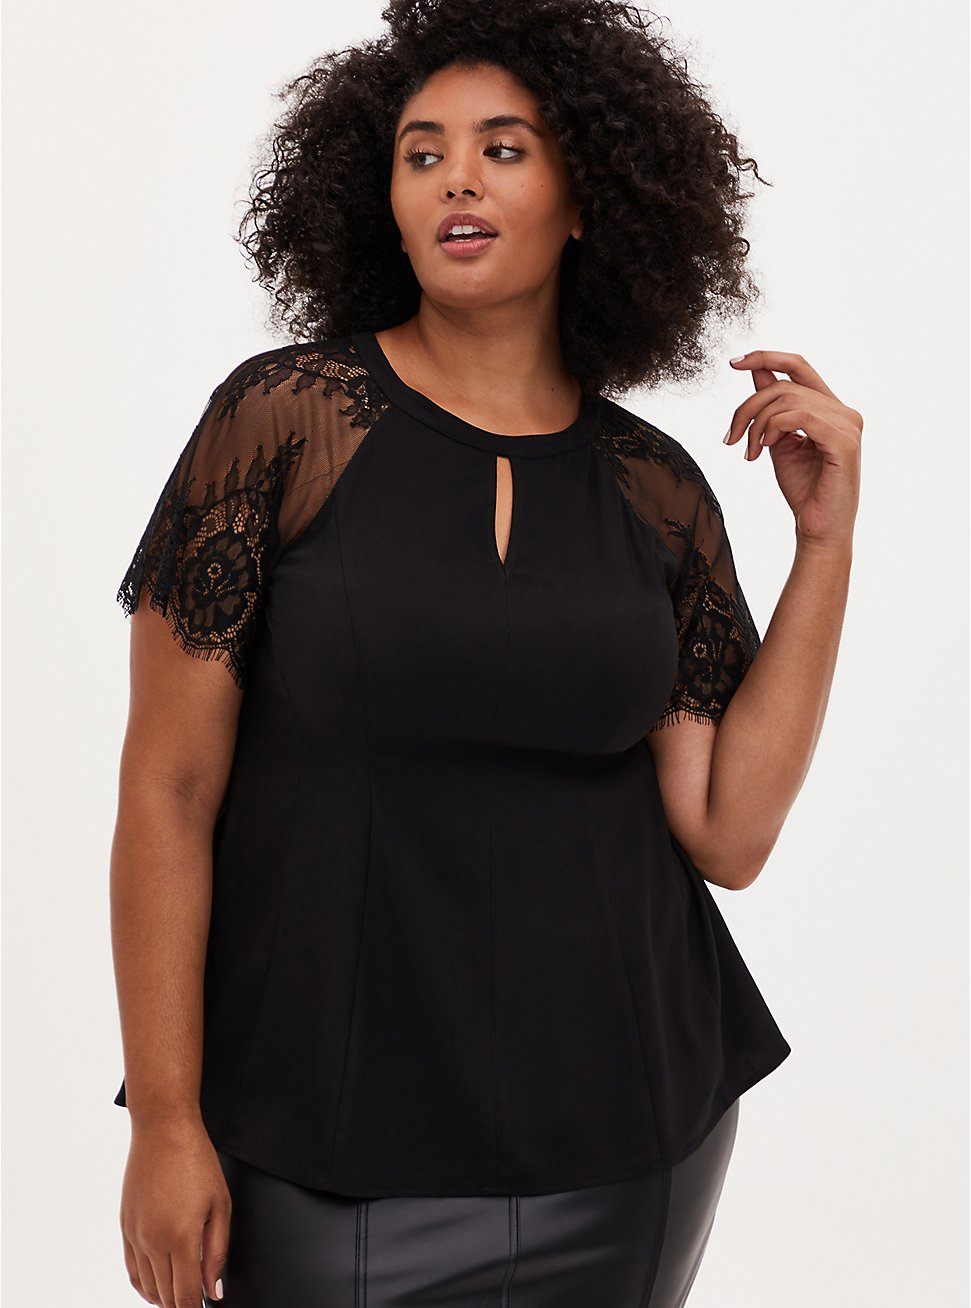 Black Crepe Lace Sleeve Fit and Flare Top, DEEP BLACK, hi-res